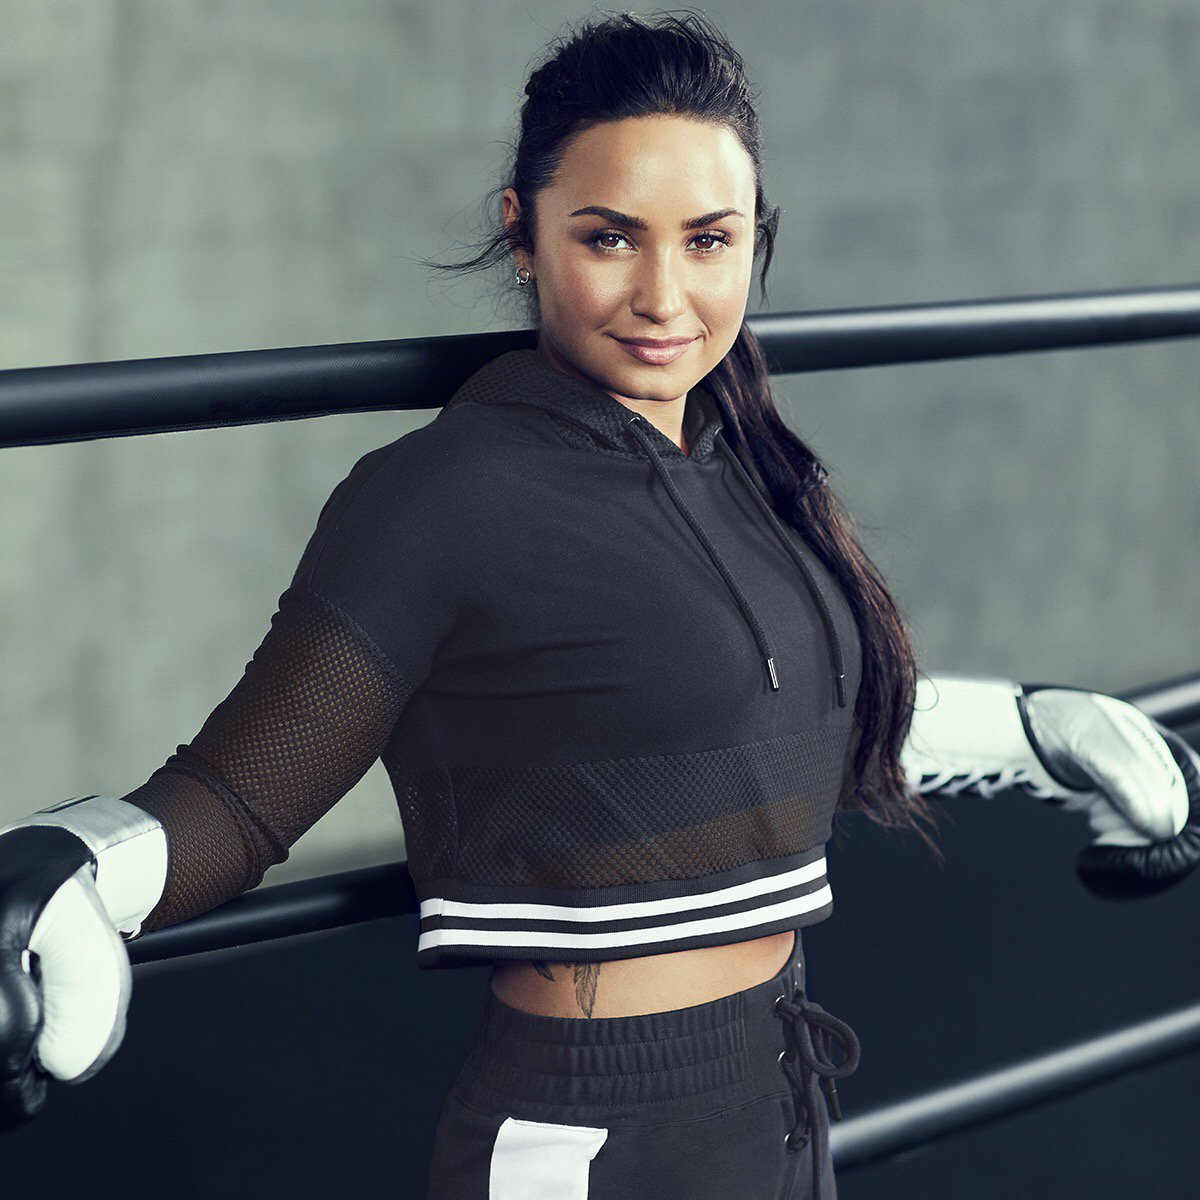 One of my favorite @fabletics looks �� The Champ Outfit #Demi4Fabletics https://t.co/eQ892piUIo https://t.co/bITfDDHBly